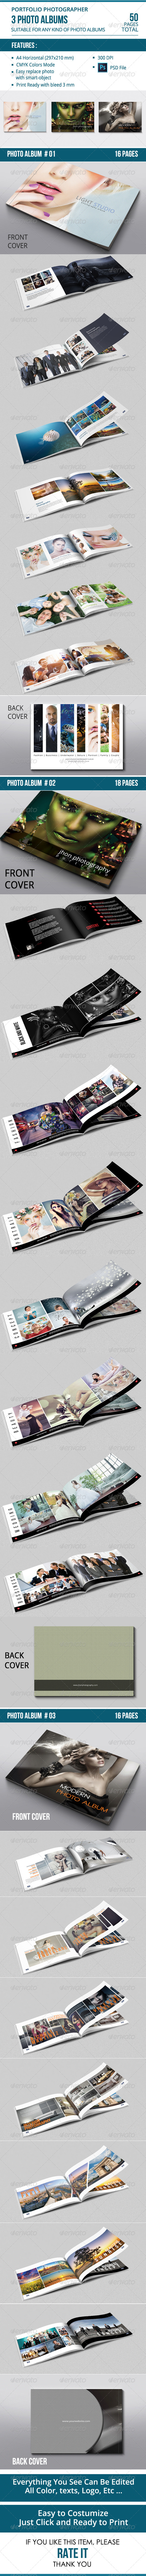 GraphicRiver Photo Albums Bundle Vol 01 8587174